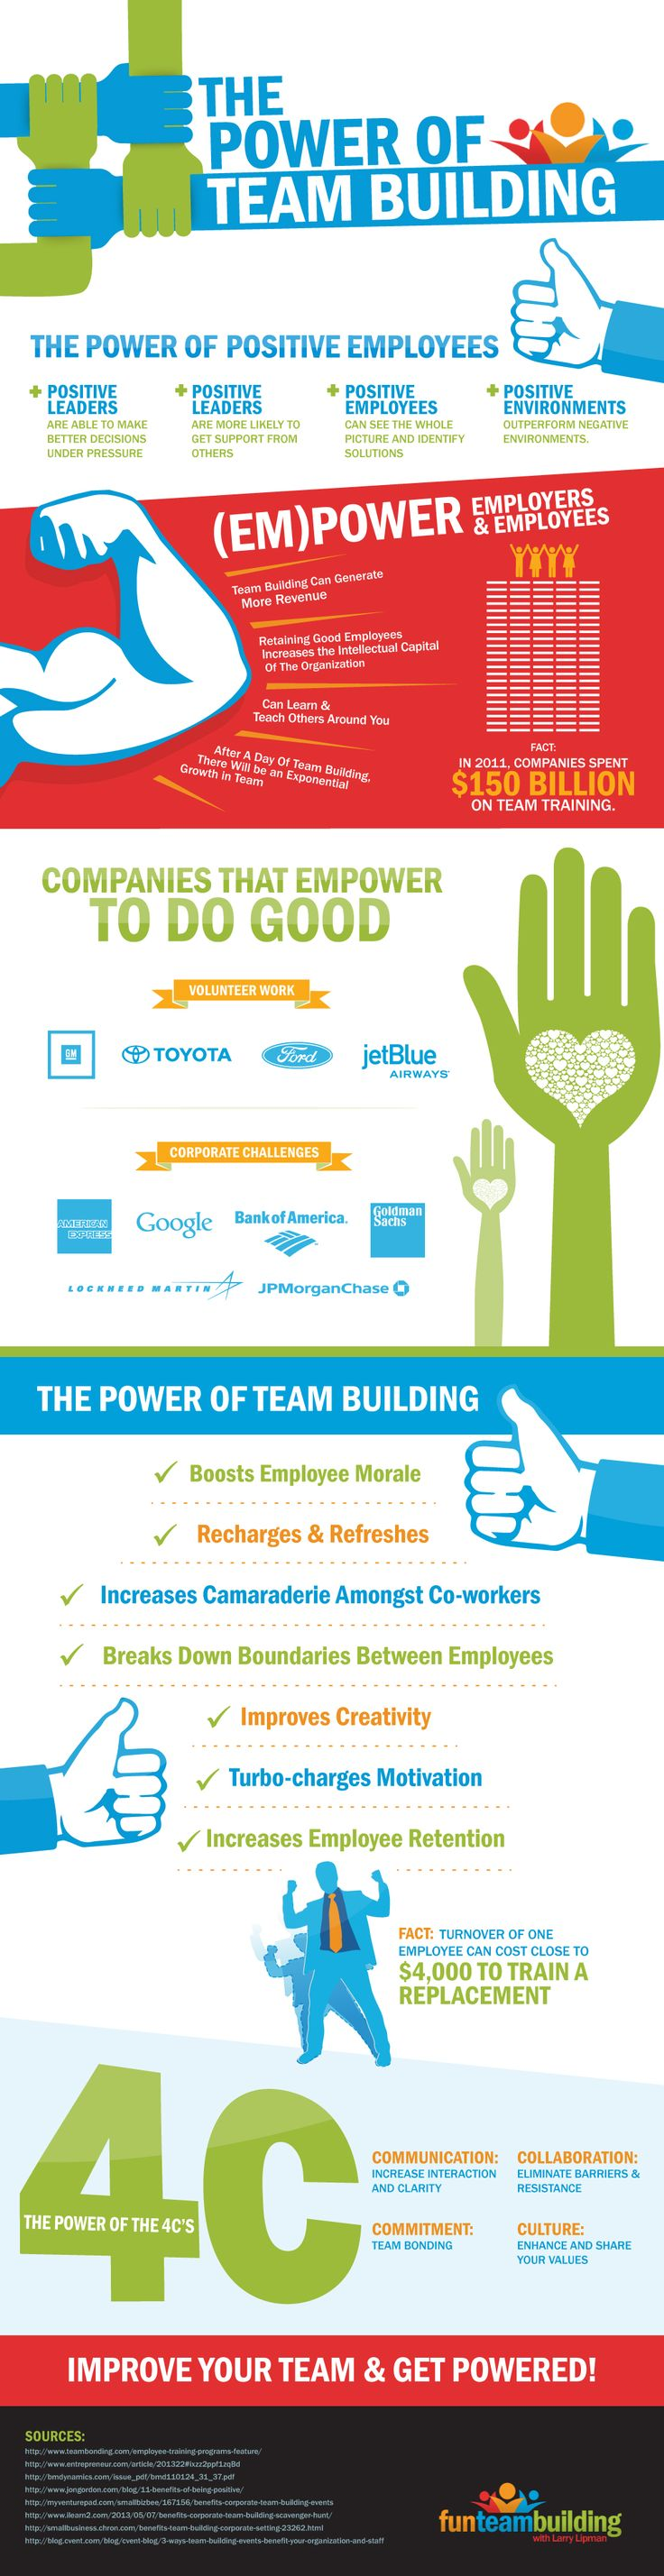 17 best images about workplace teams star work creating a sense of camaraderie in the office has many benefits for both the employer and employees hosting team building activities and events helps to